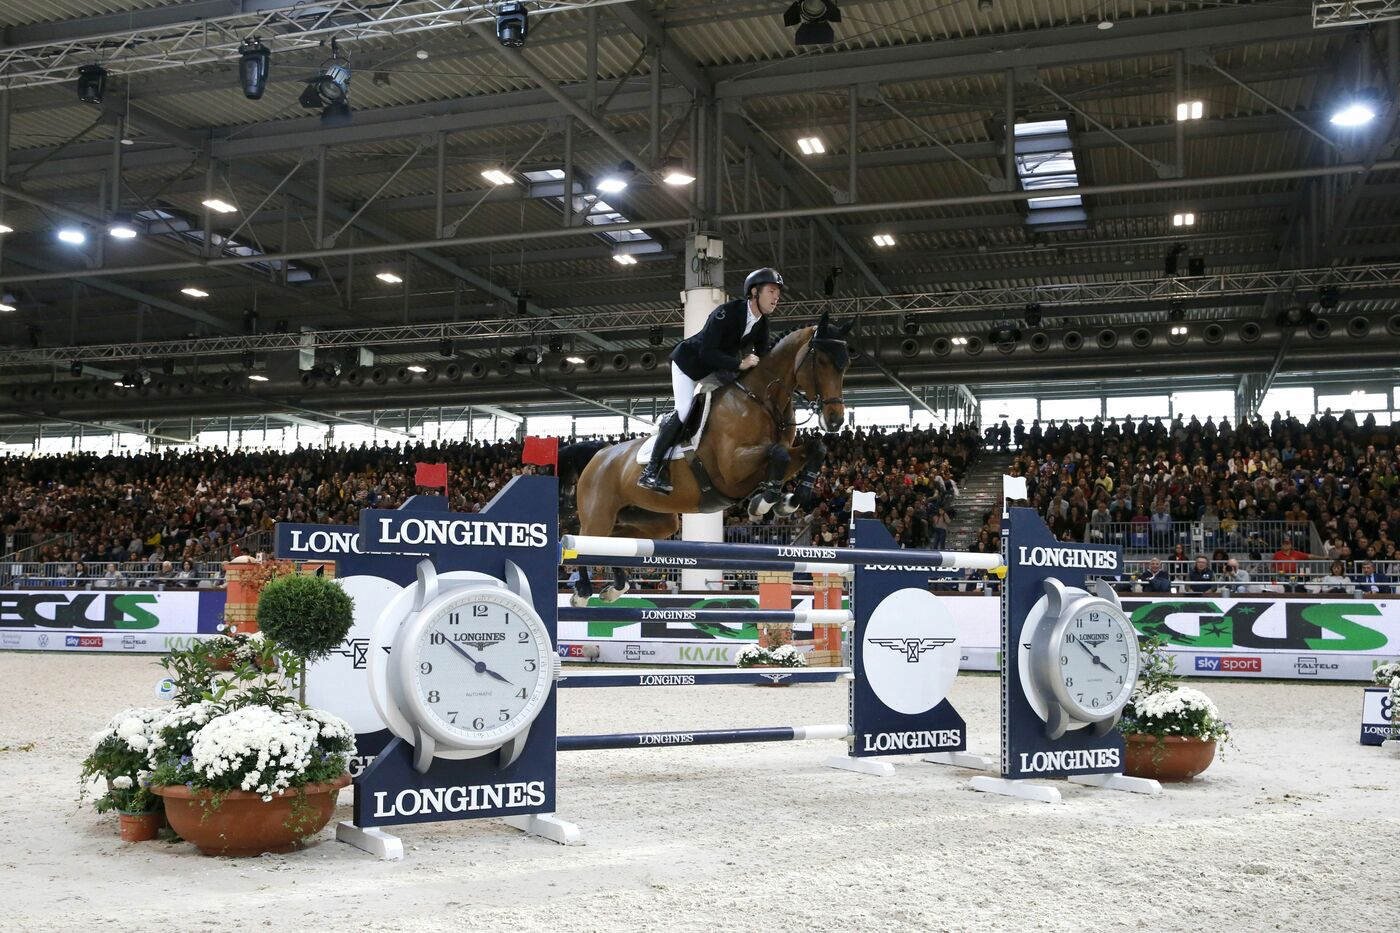 Longines Show Jumping Event: Scott Brash (GB) and Hello M'lady, convincing winners of the Longines FEI Jumping World Cup Verona  4